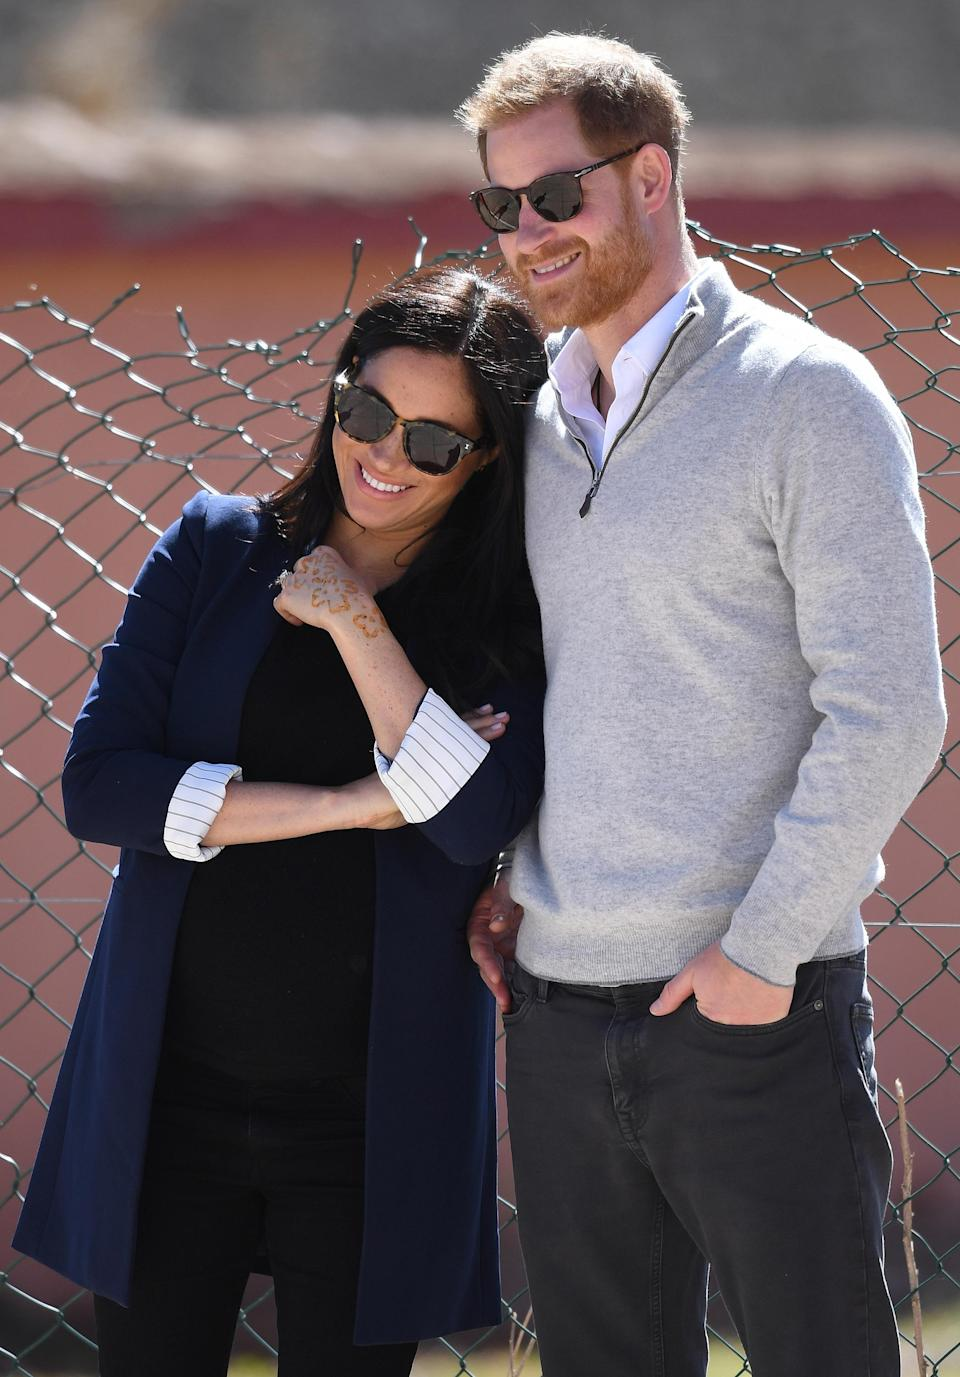 Prince Harry and Meghan Markle's baby won't take either of their surnames. Photo: Getty Images